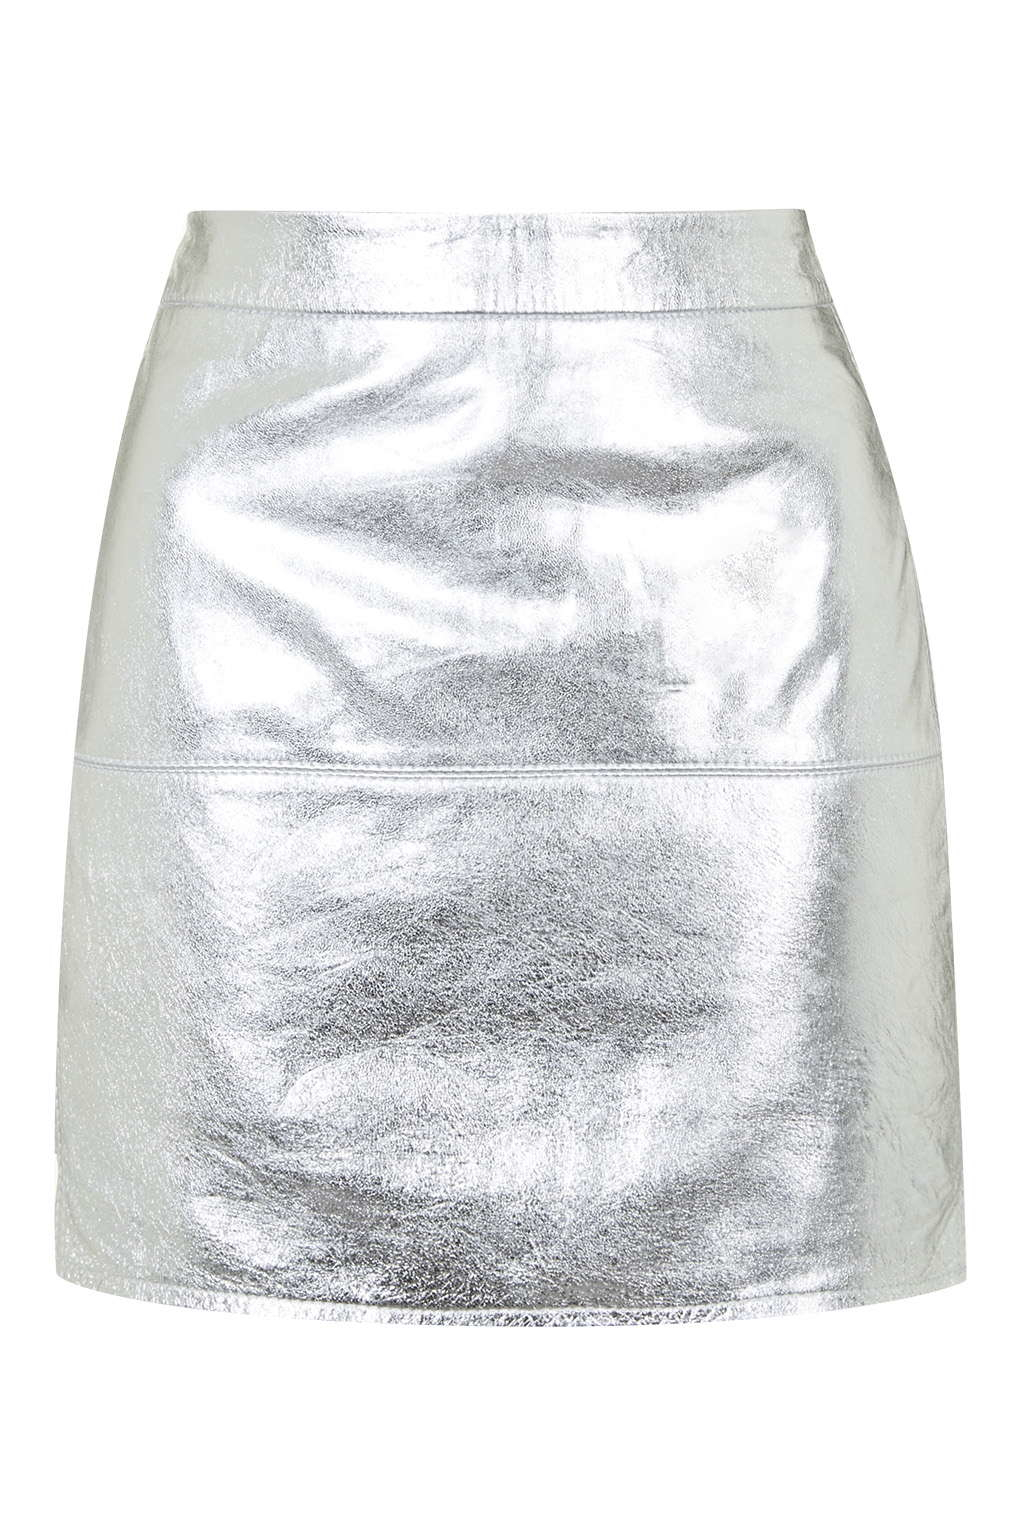 topshop metallic silver leather skirt by kendall